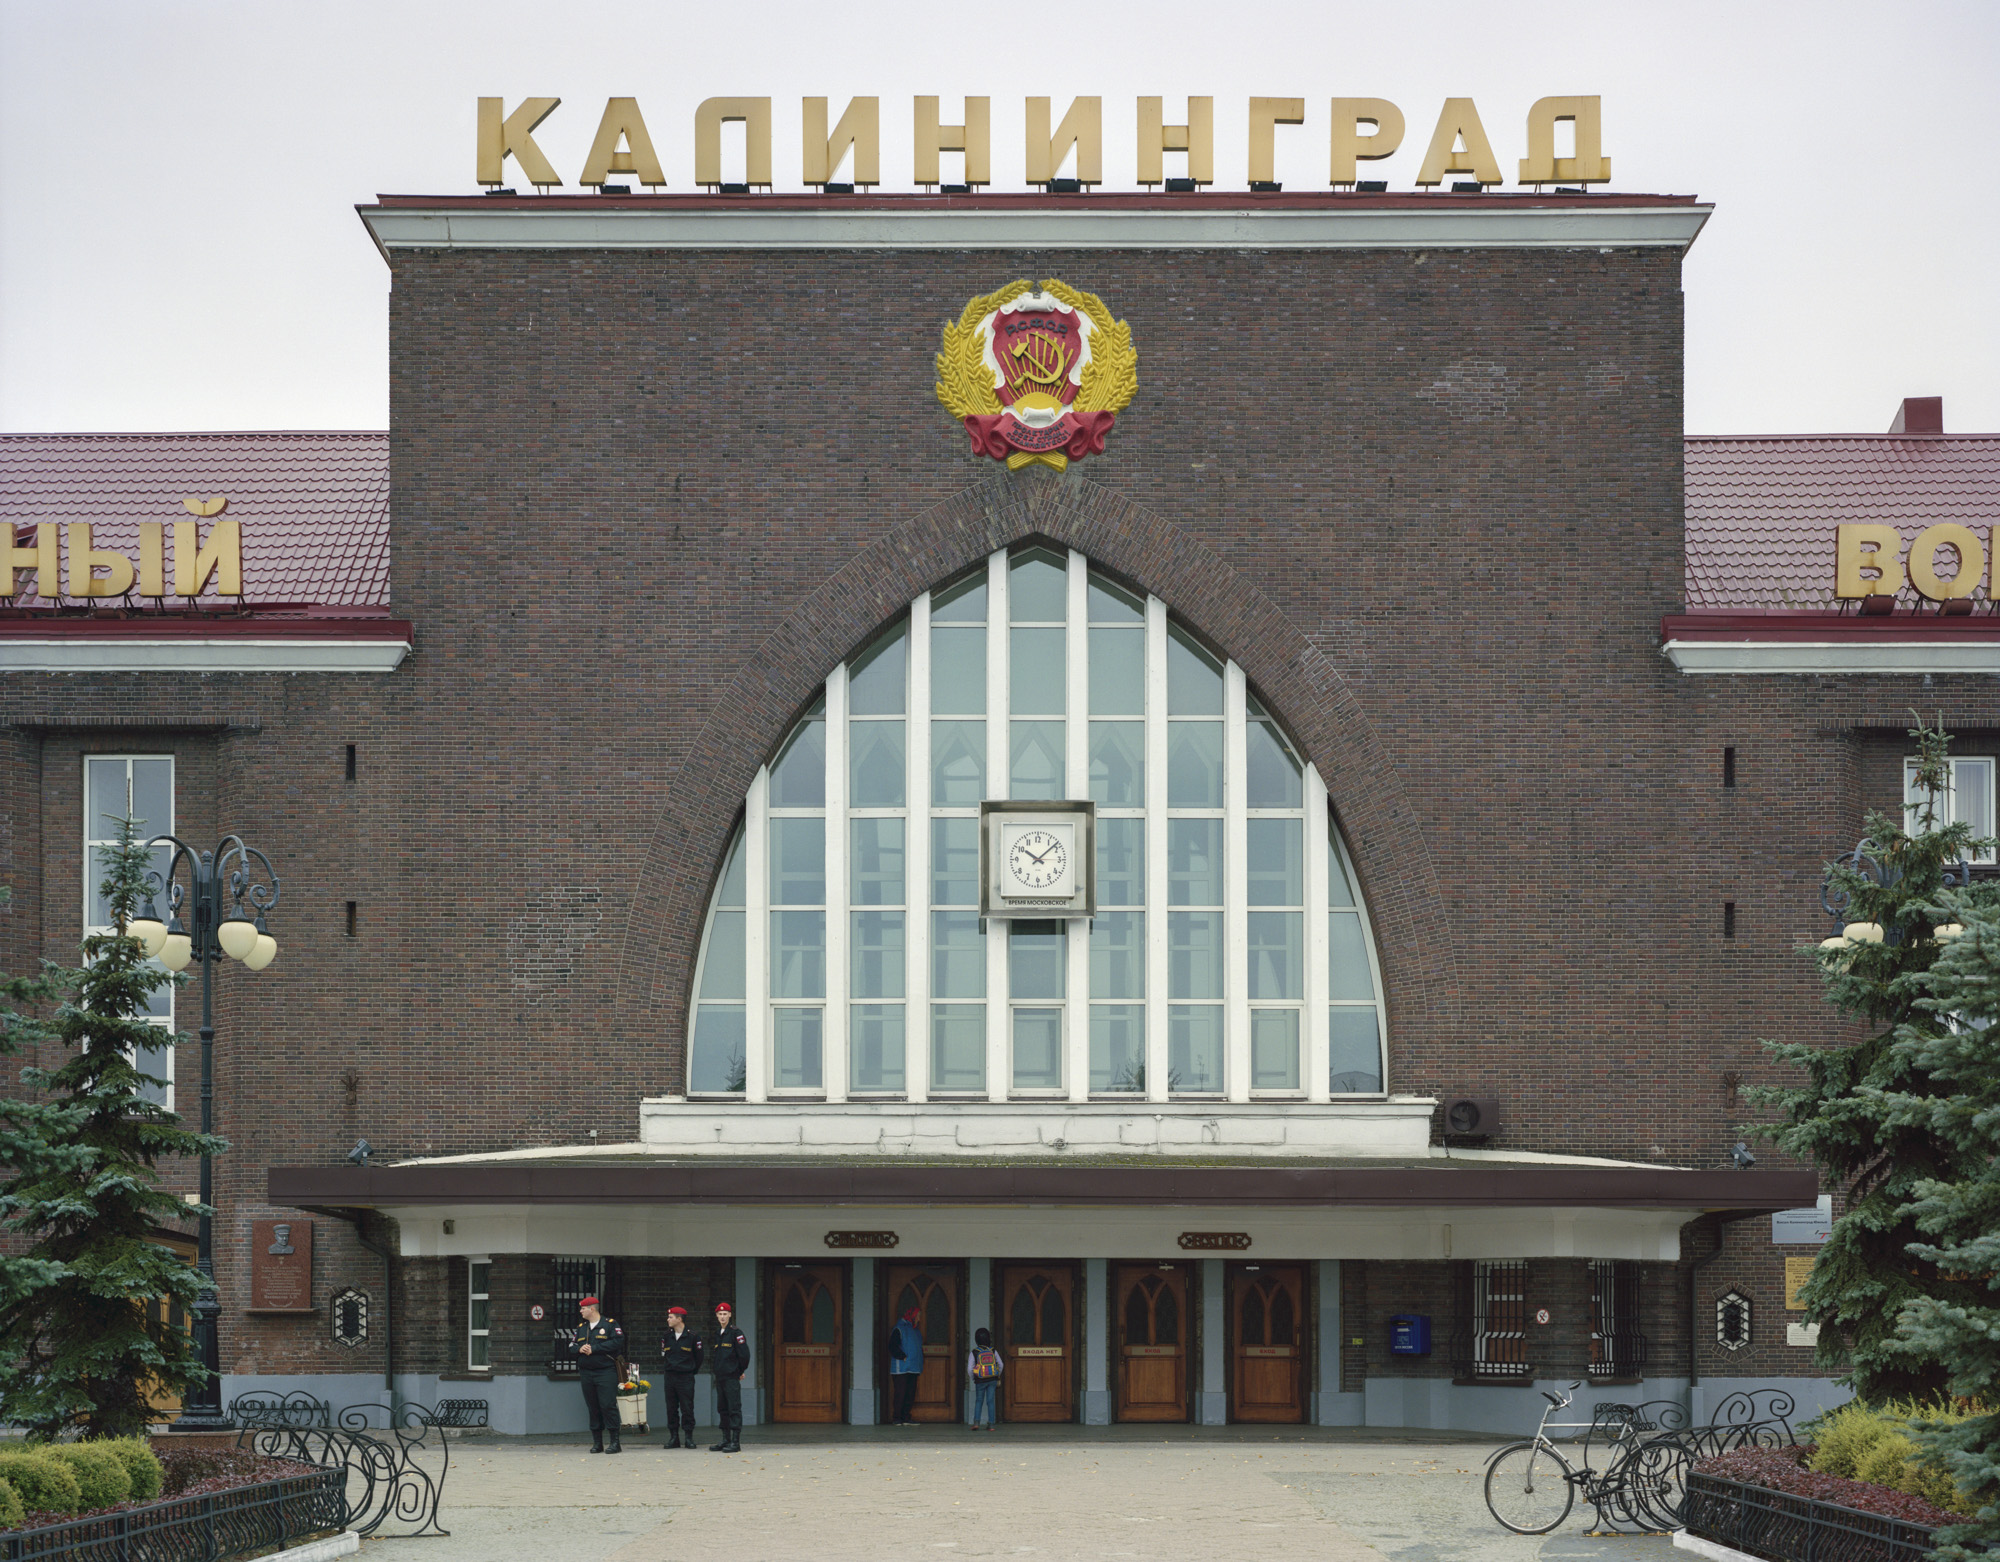 01-Kaliningrad-south-railway-station4x5